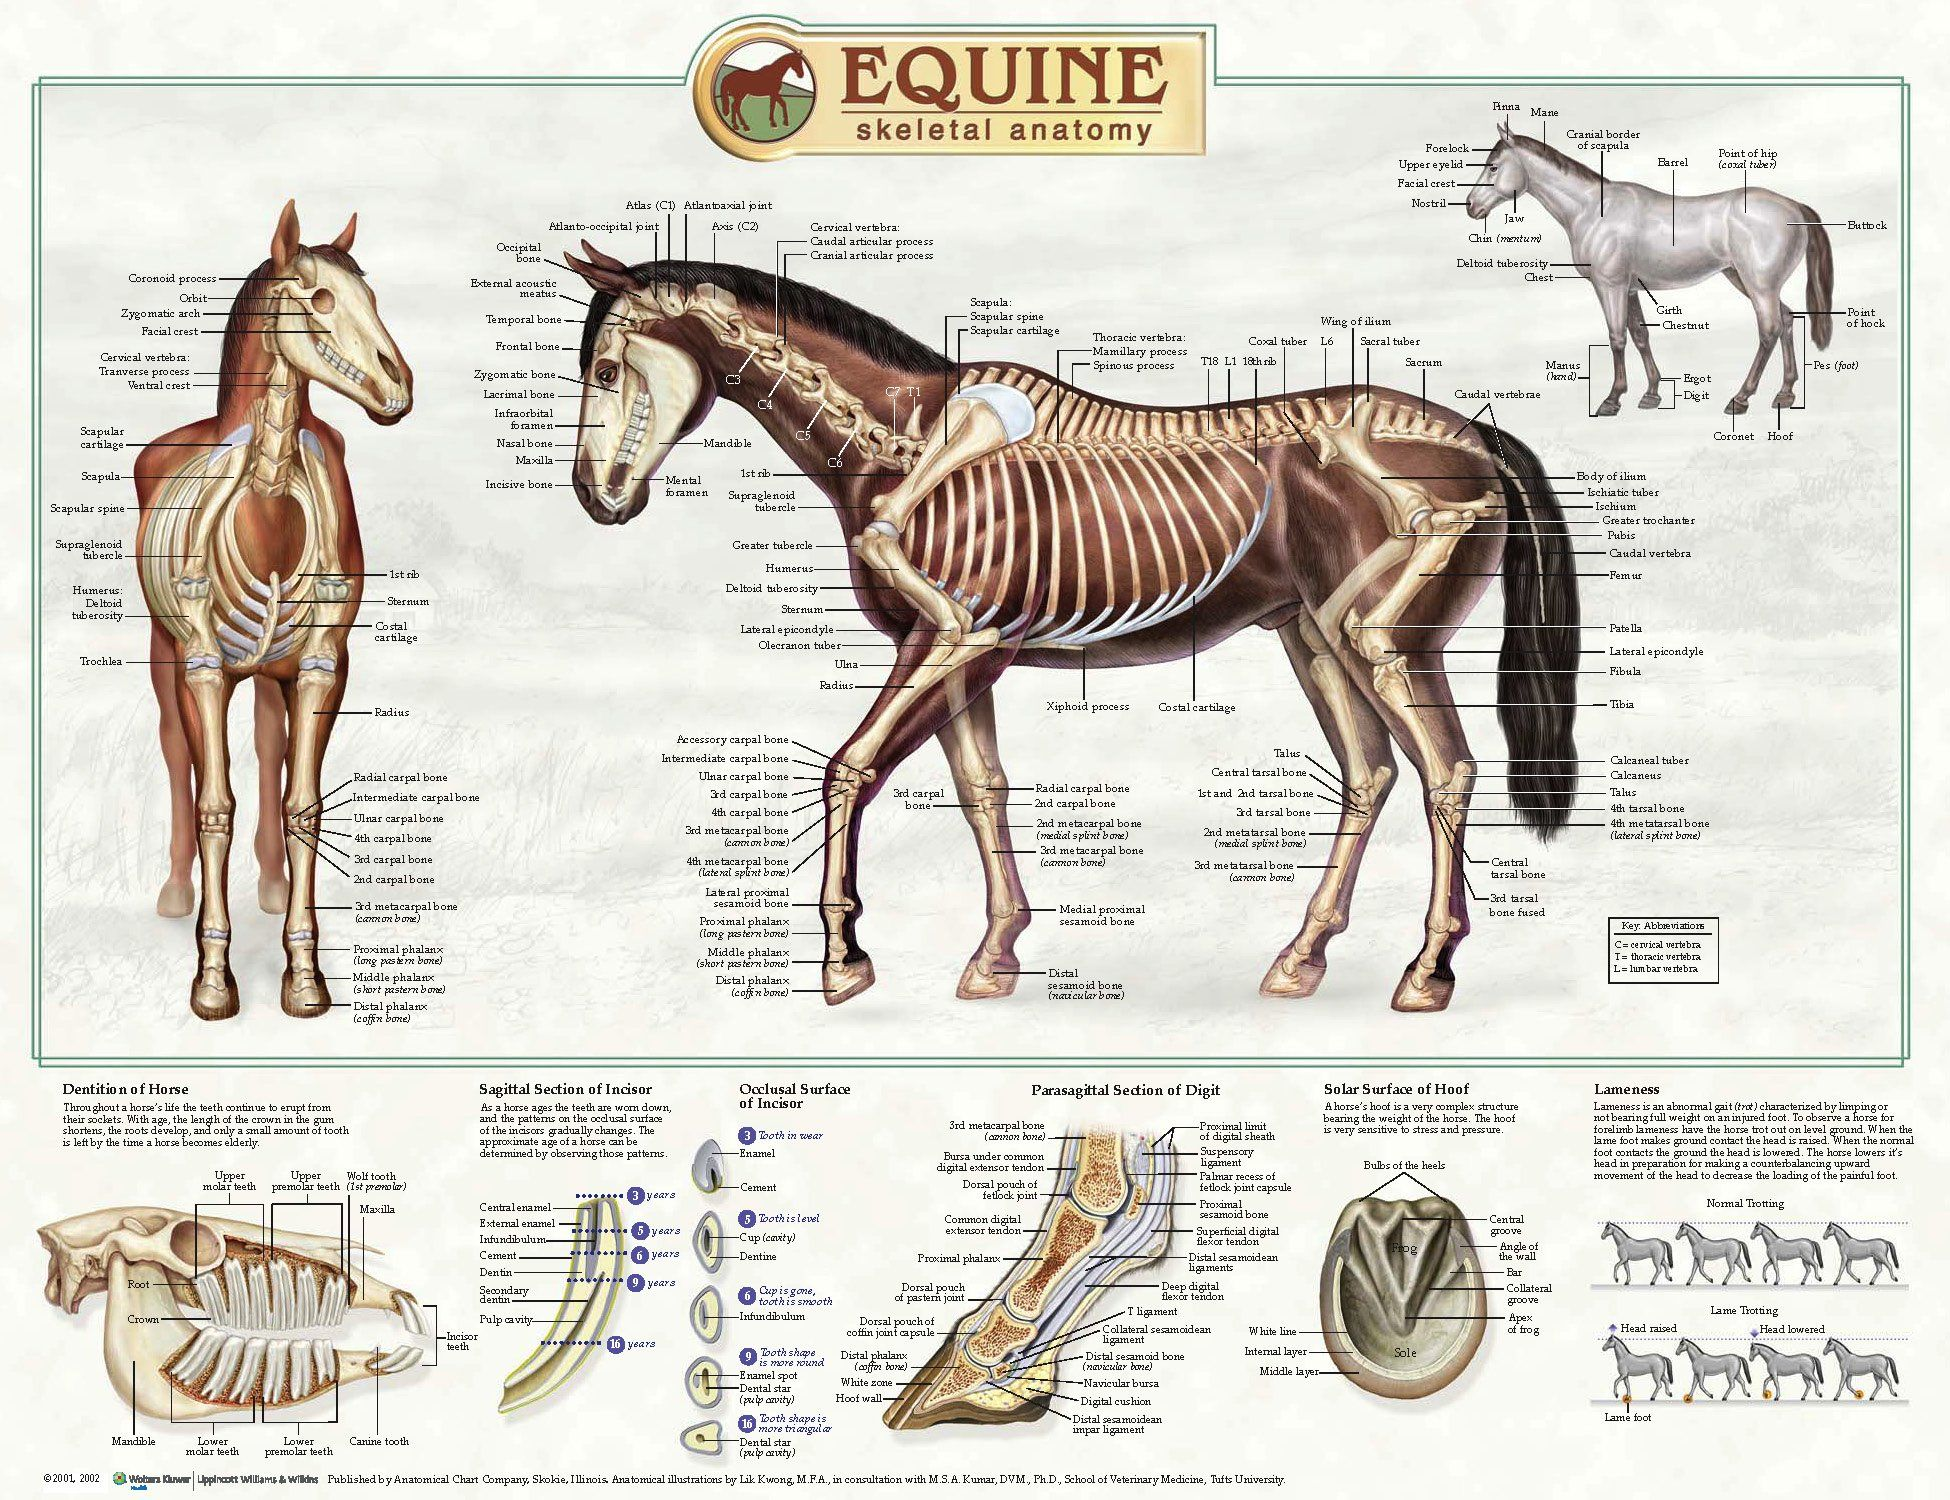 Equine Skeletal Anatomy Laminated Wallchart [Poster]: Amazon.co.uk ...